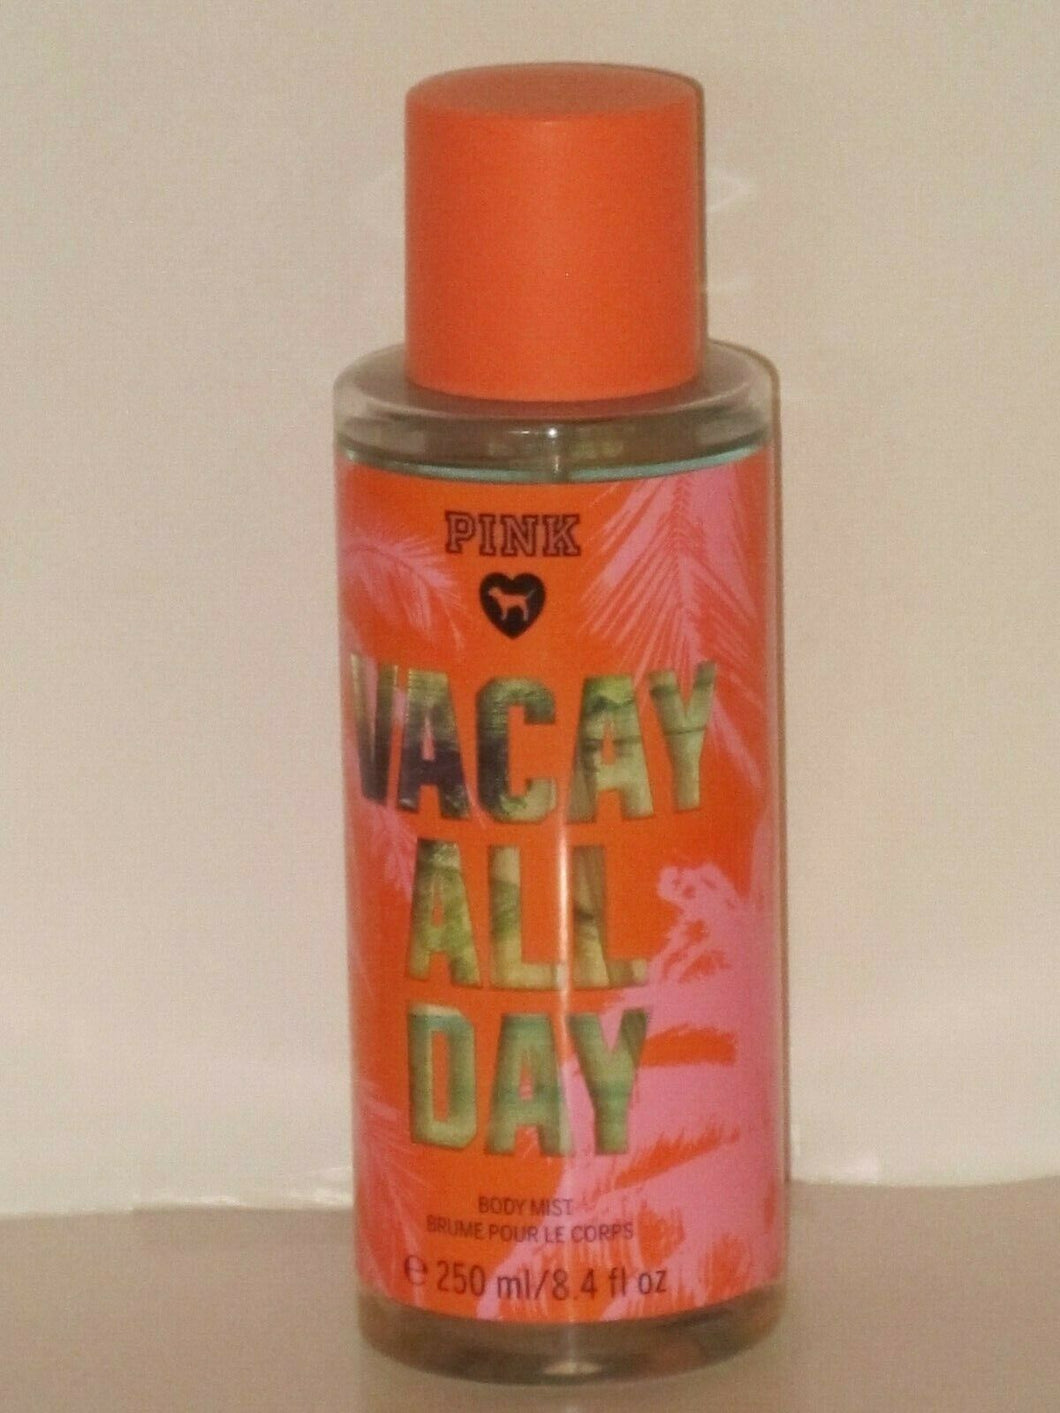 VICTORIA'S SECRET PINK VACAY ALL DAY (ORCHID & SANDALWOOD) BODY MIST 250 ml.NEW!